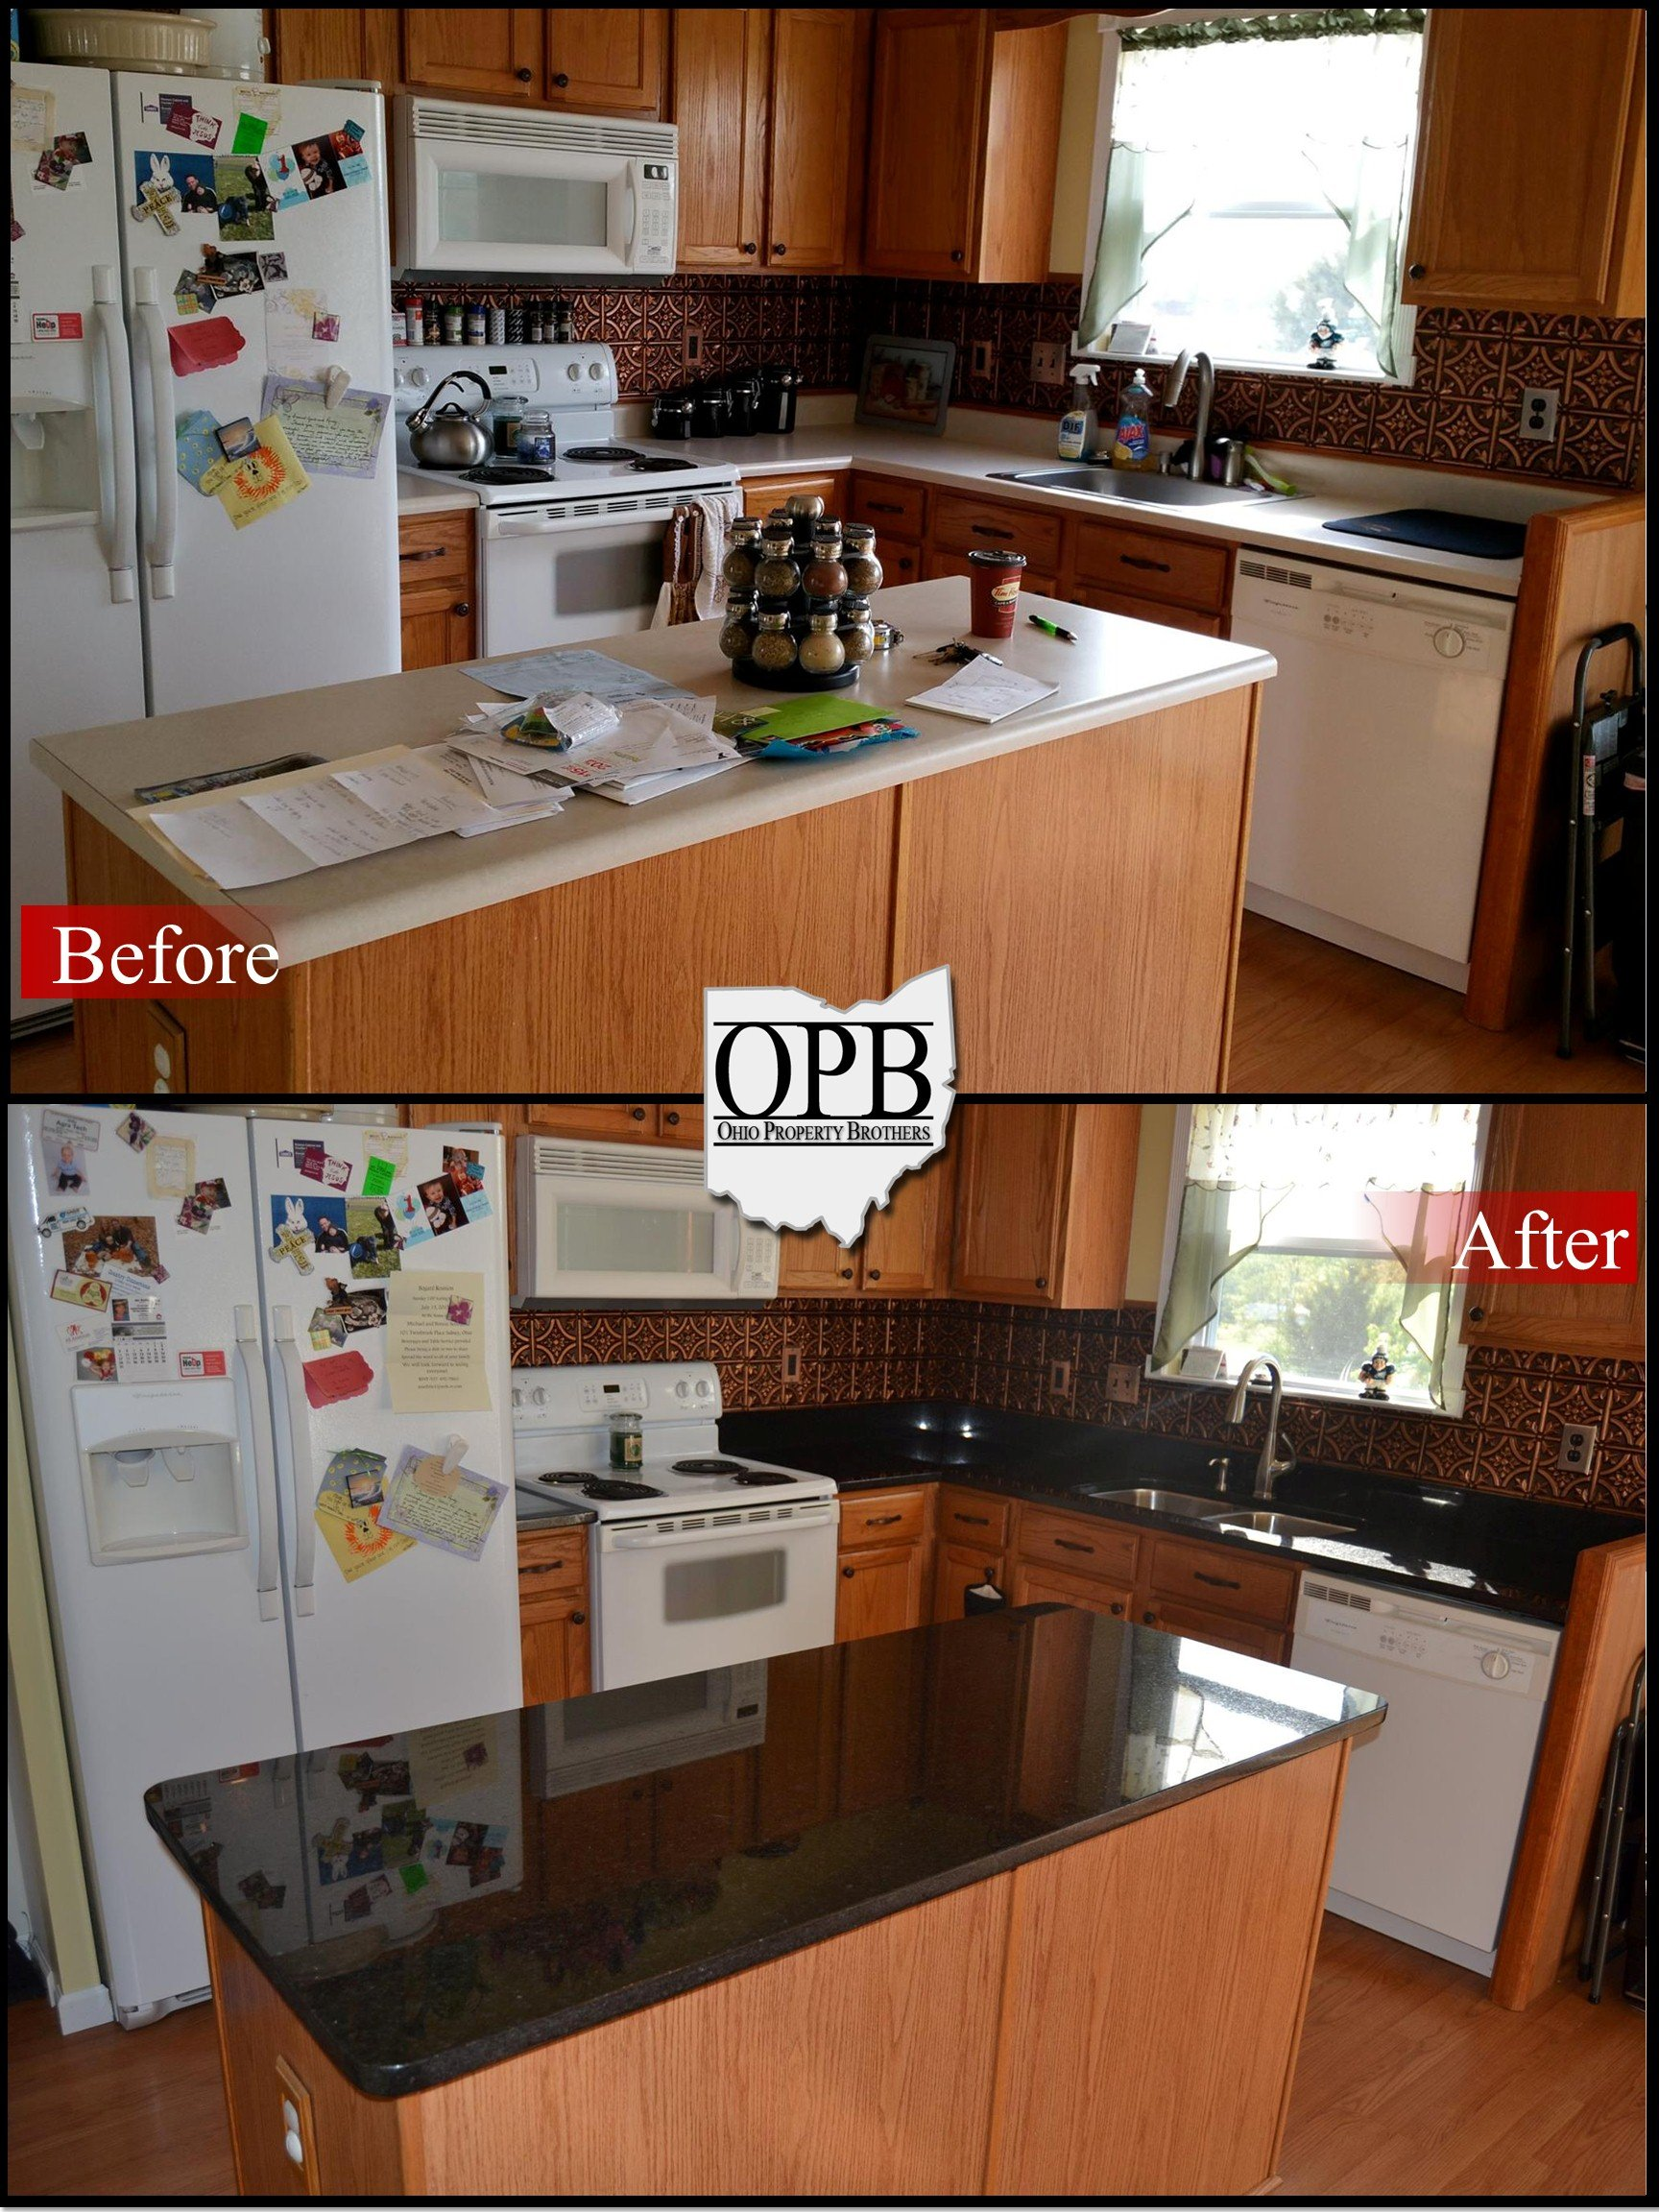 Uba Tuba Granite Kitchen Uba Tuba Granite Upgrade On Oak Cabinets Ohio Property Brothers